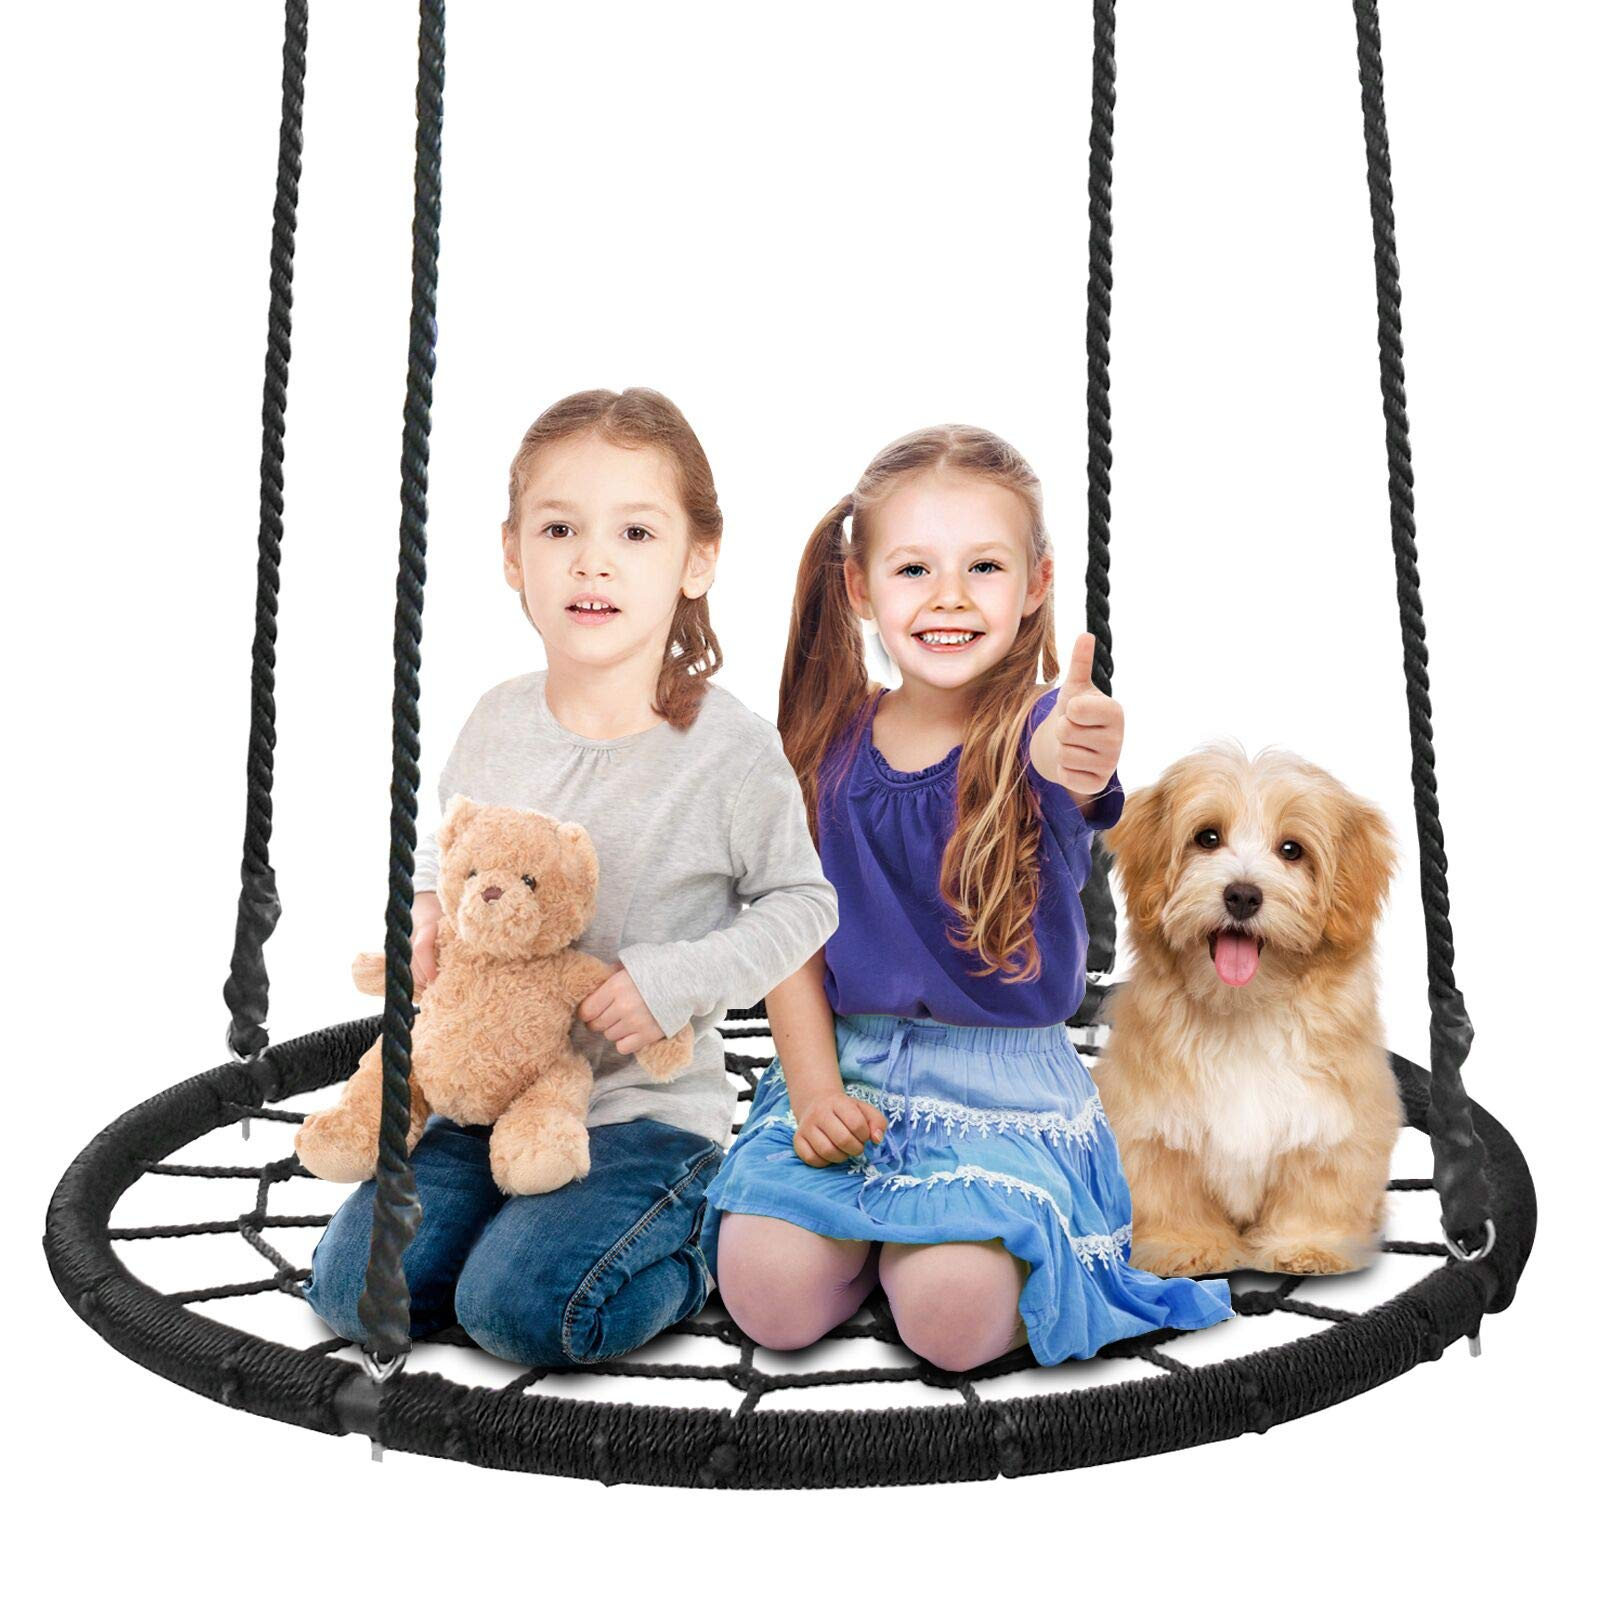 SUPER DEAL 40'' Spider Web Tree Swing Net Swing Platform Rope Swing 71'' Detachable Nylon Rope Swivel, Max 600 Lbs, Extra Safe and Durable, Fun for Kids by SUPER DEAL